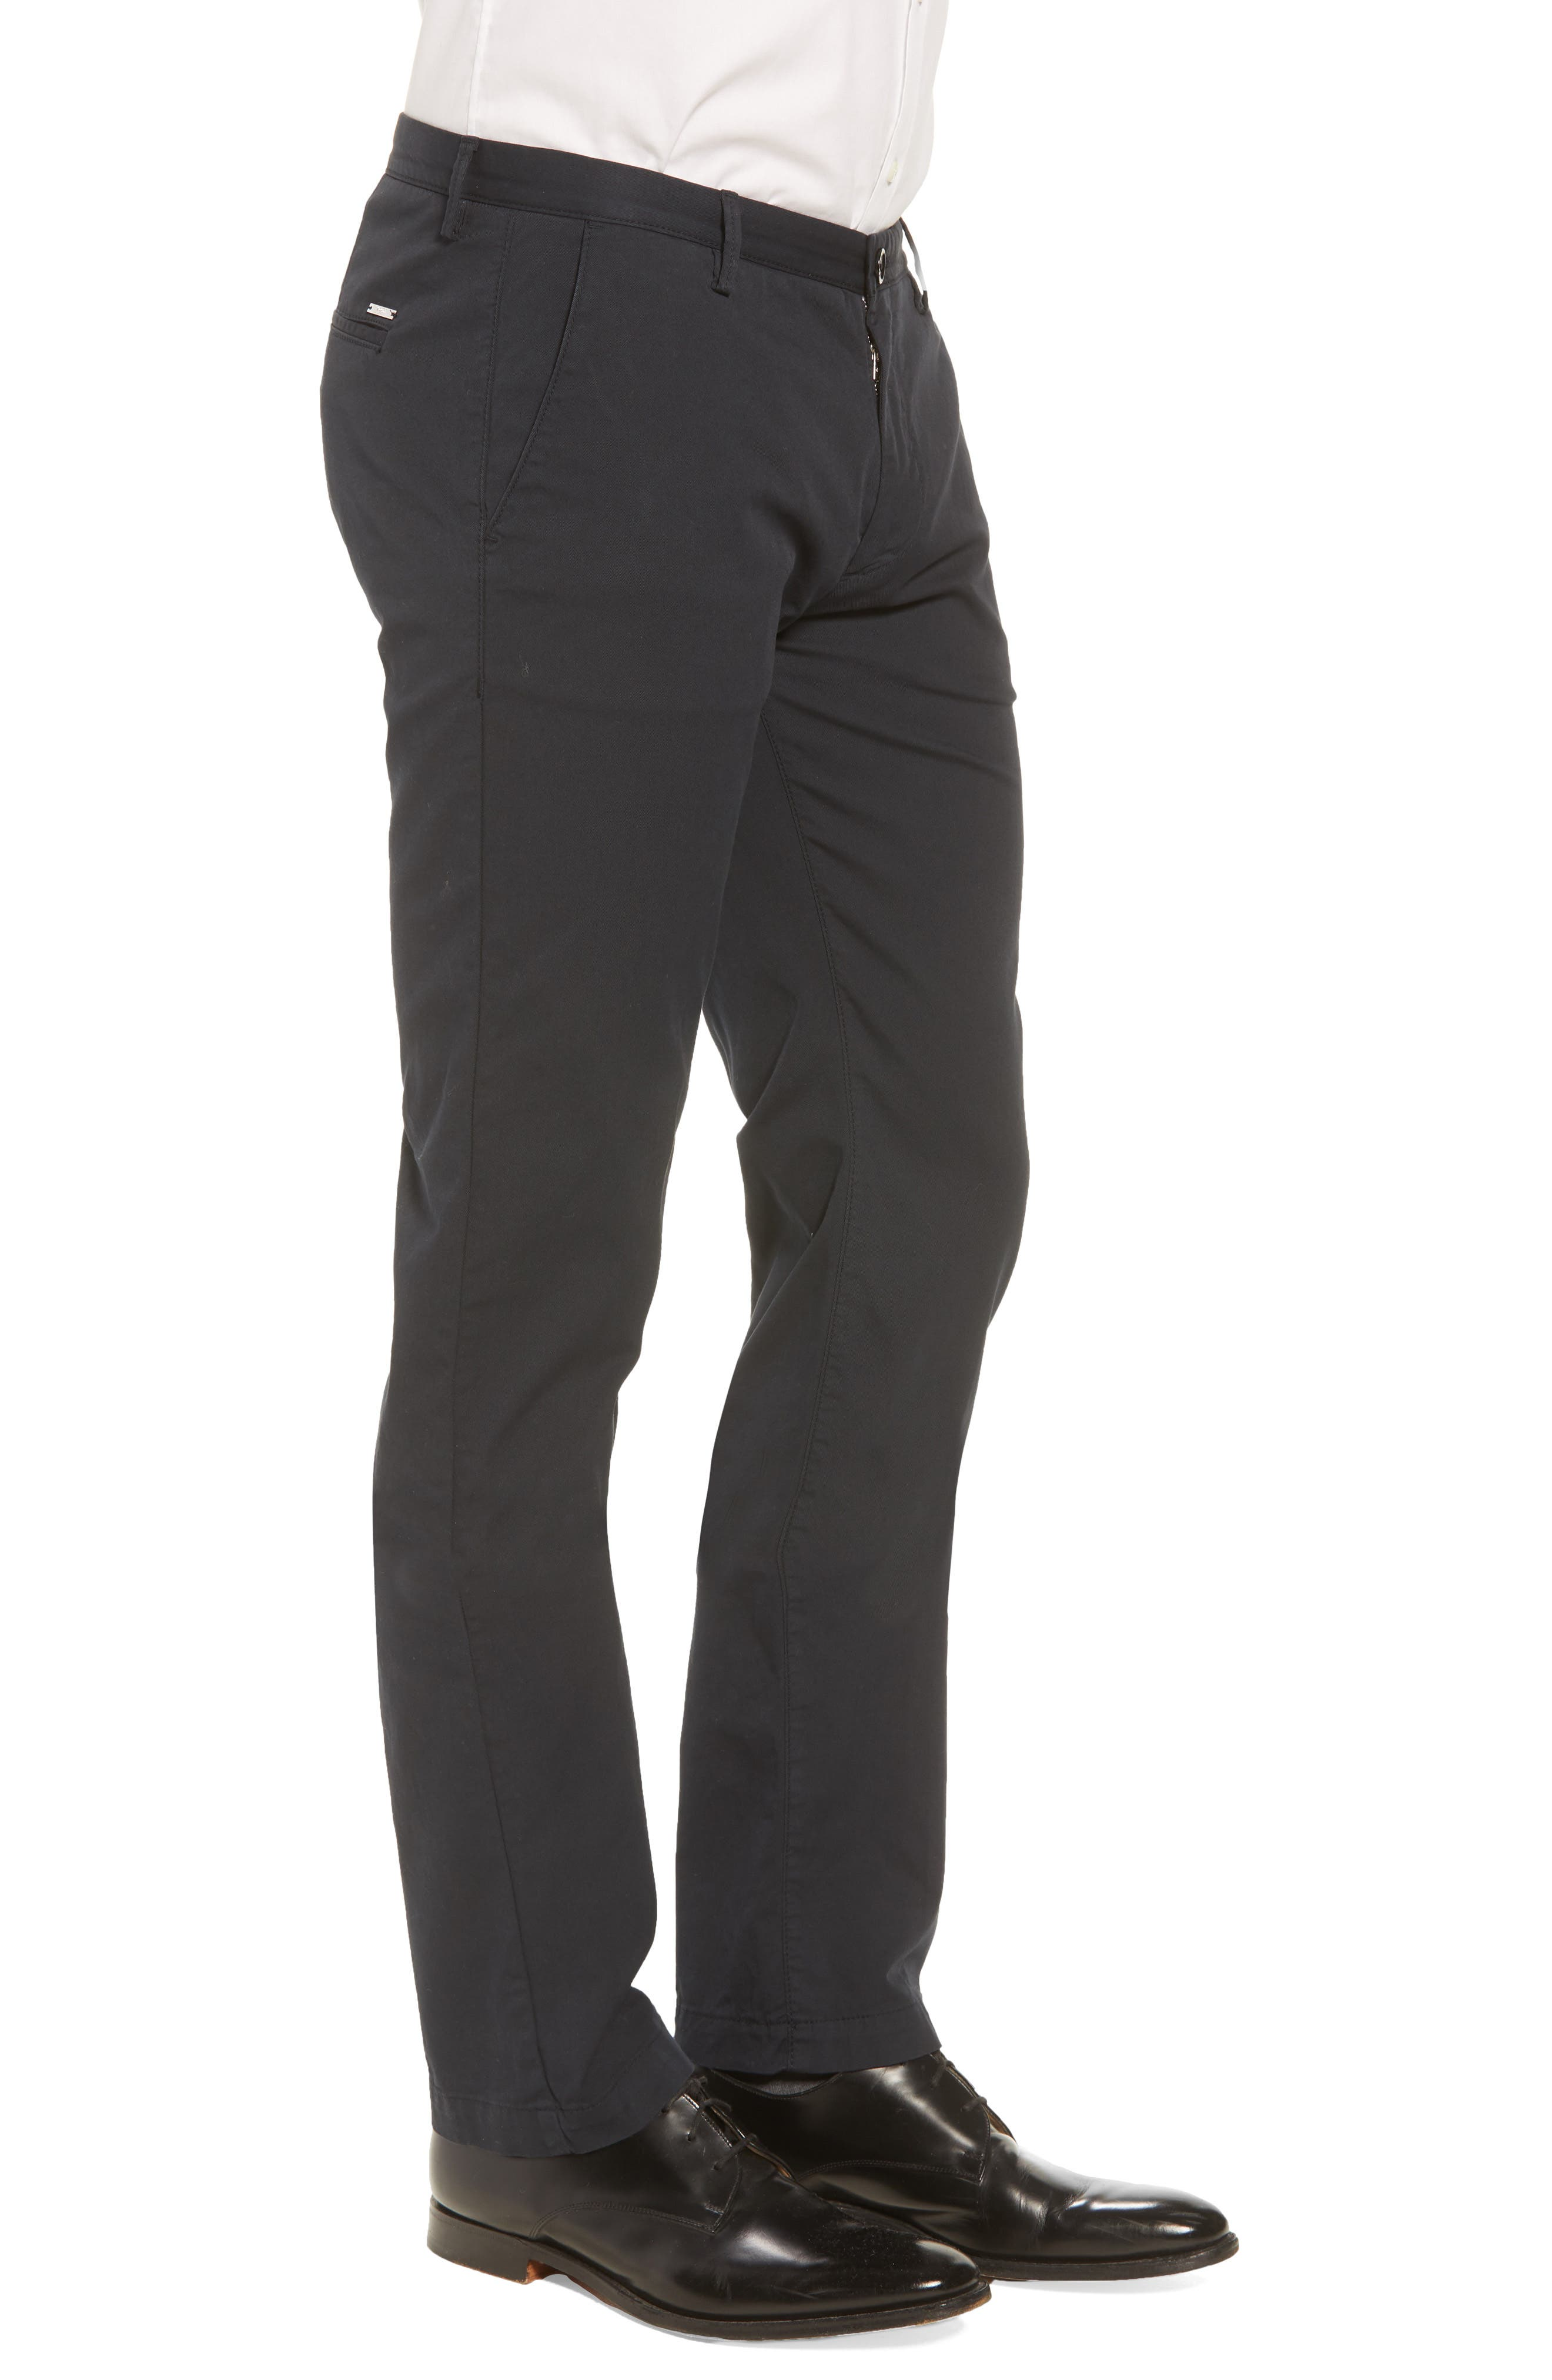 Rice Slim Fit Chino Pants,                             Alternate thumbnail 6, color,